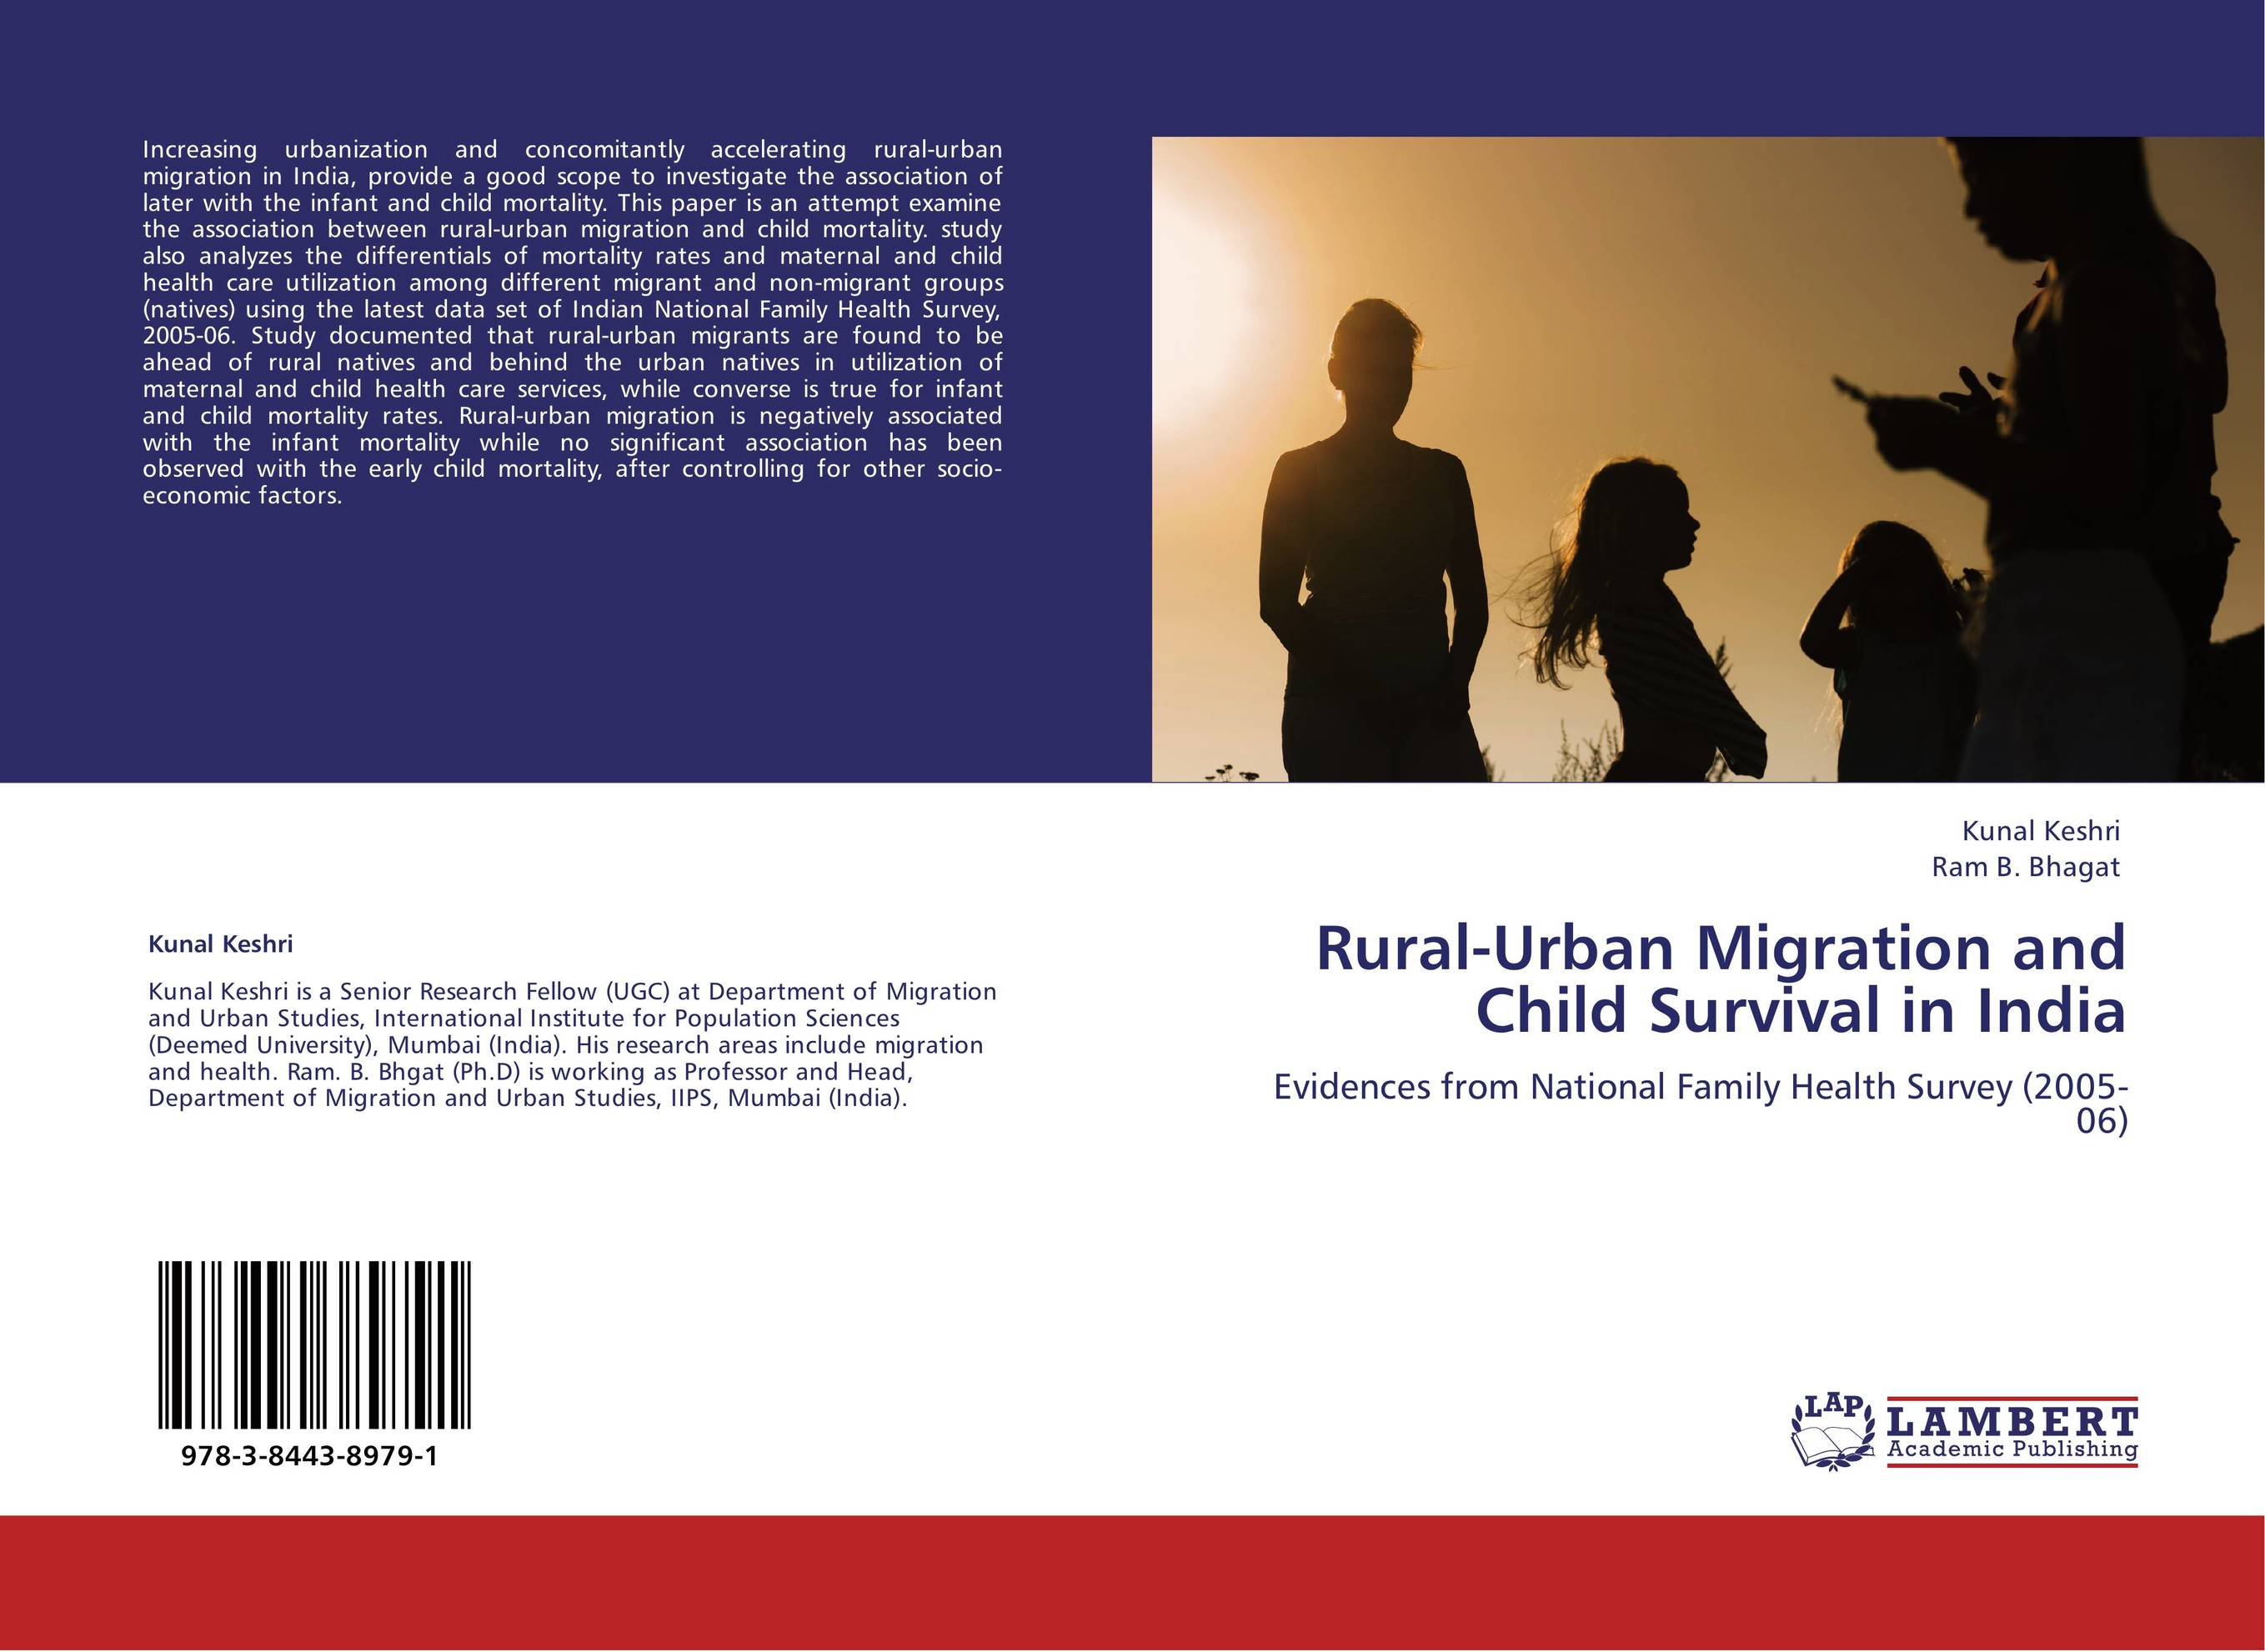 rural and urban migration The relationship between rural-urban migration, household income and unemployment: malaysia case study international journal of managerial studies and research (ijmsr) page | 19.